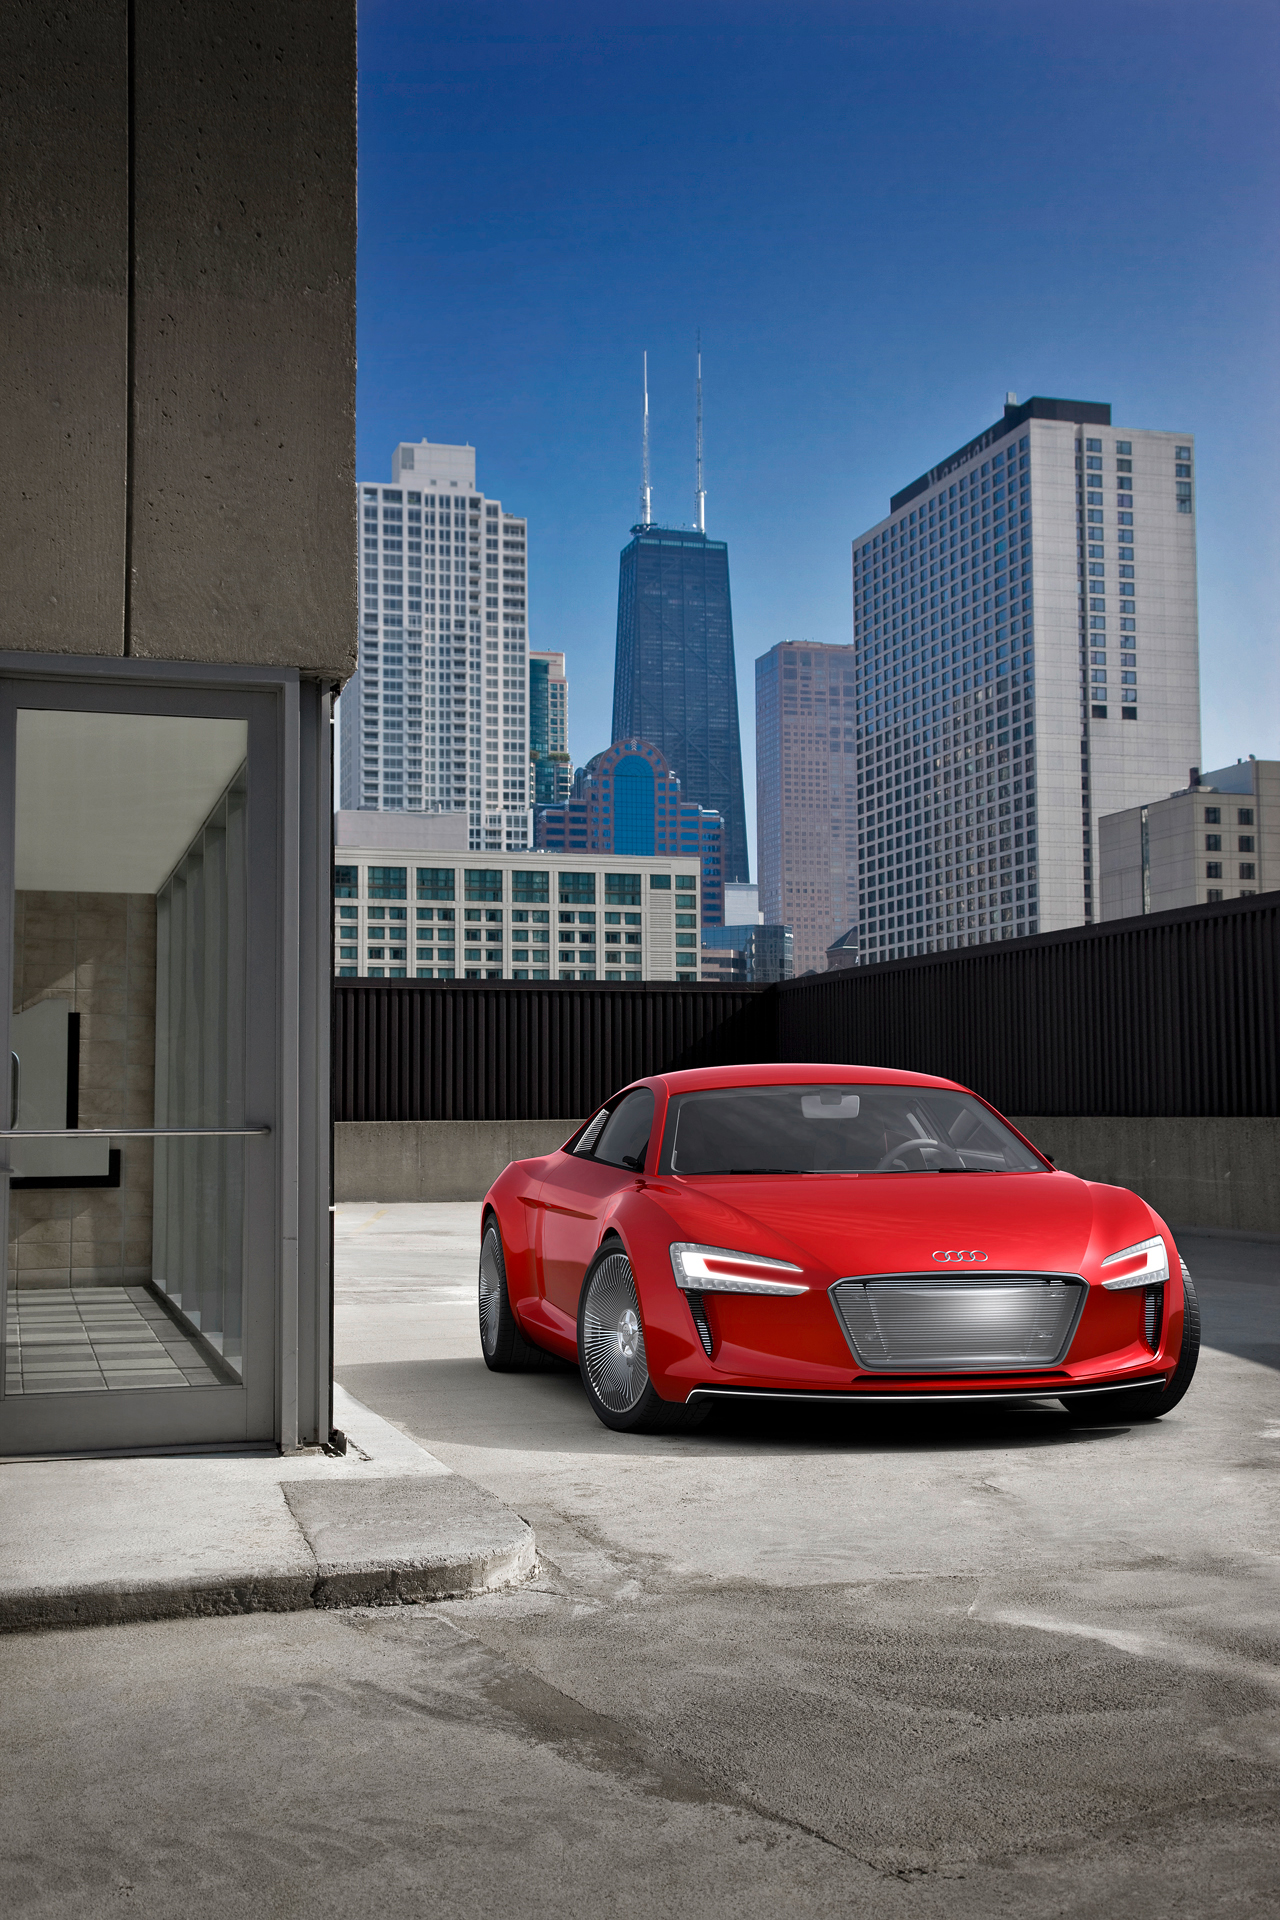 Audietronchicago - Mcgrath audi